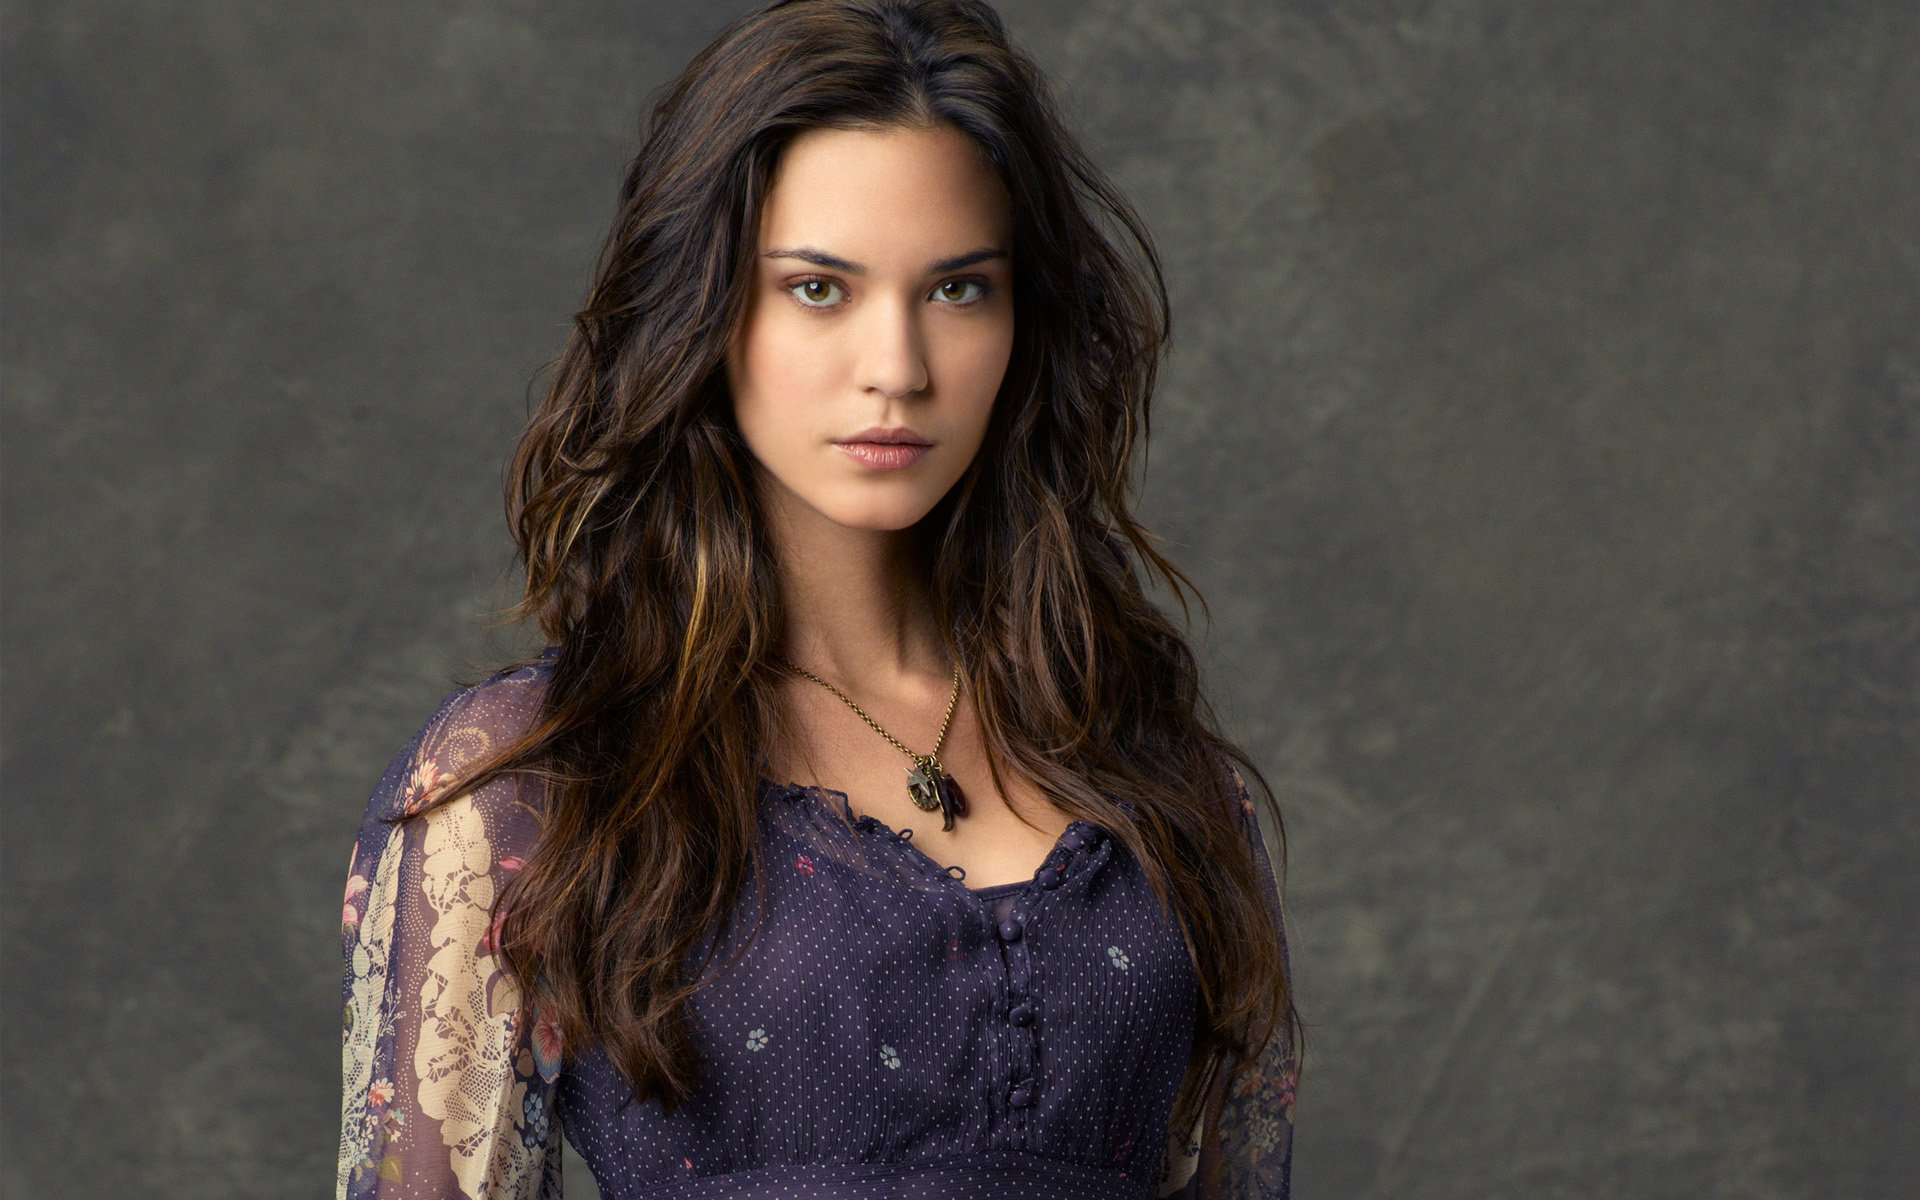 1920x1200 - Odette Annable Wallpapers 2